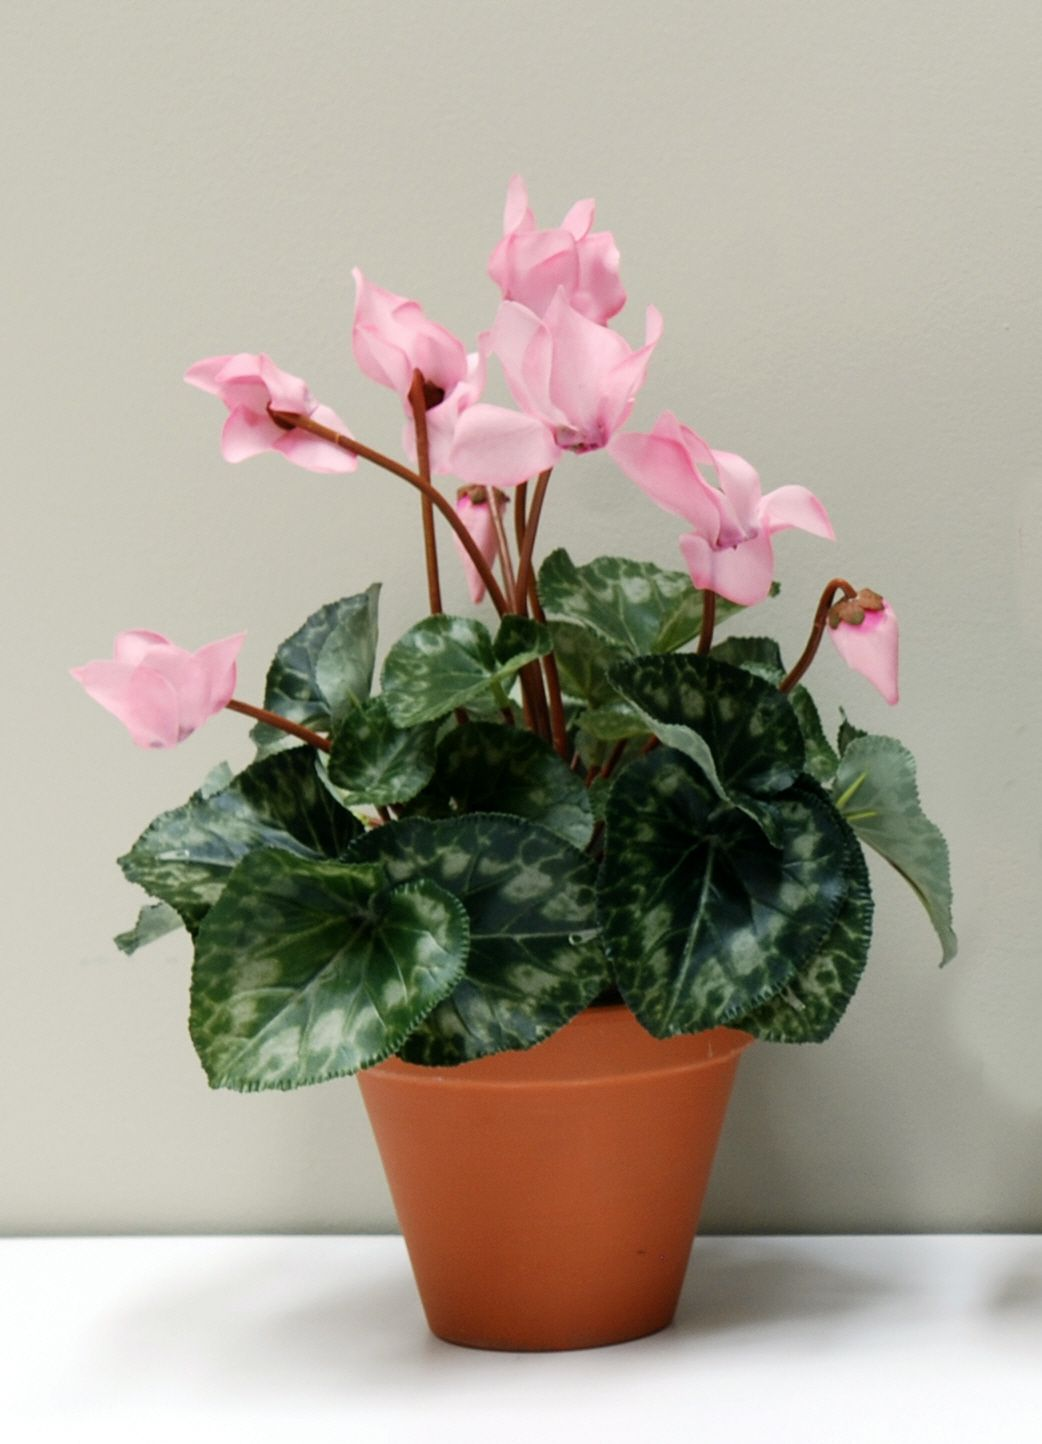 Https Www Justartificial Co Uk Artificial And Silk Flowers T1v3 Cyclamen Bush P113141 Productview